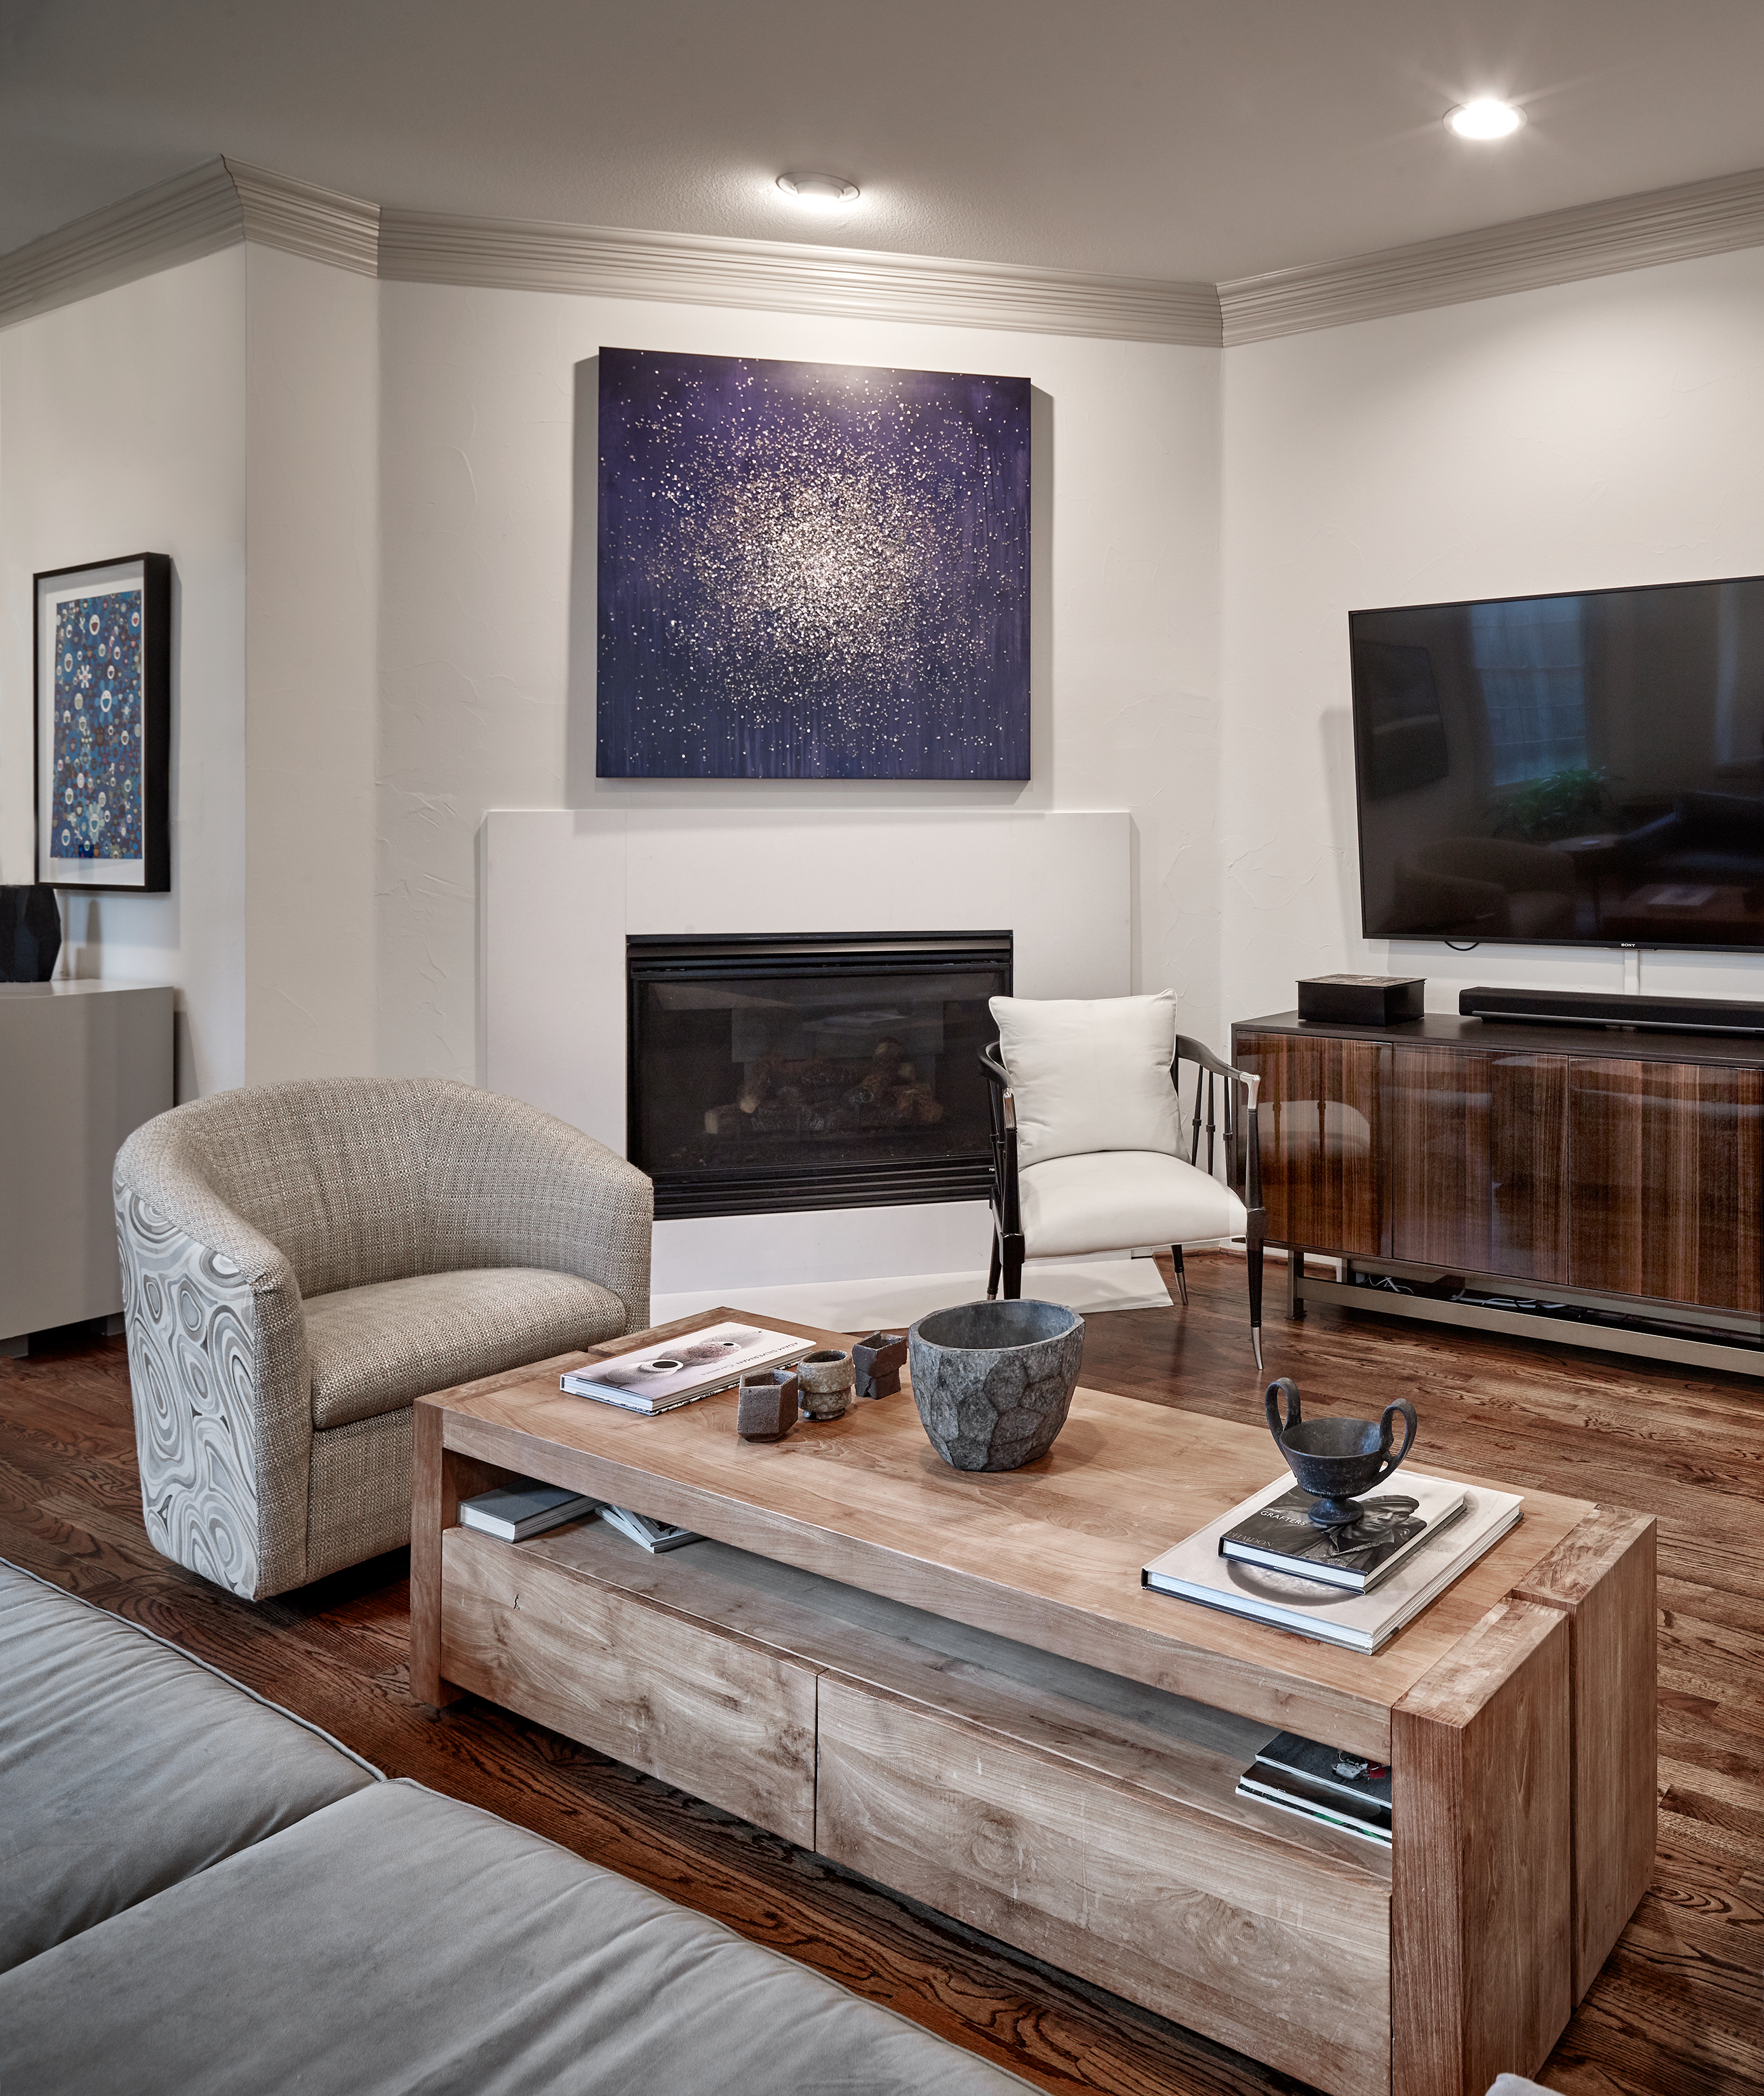 Blue art above contemporary fire place in living room